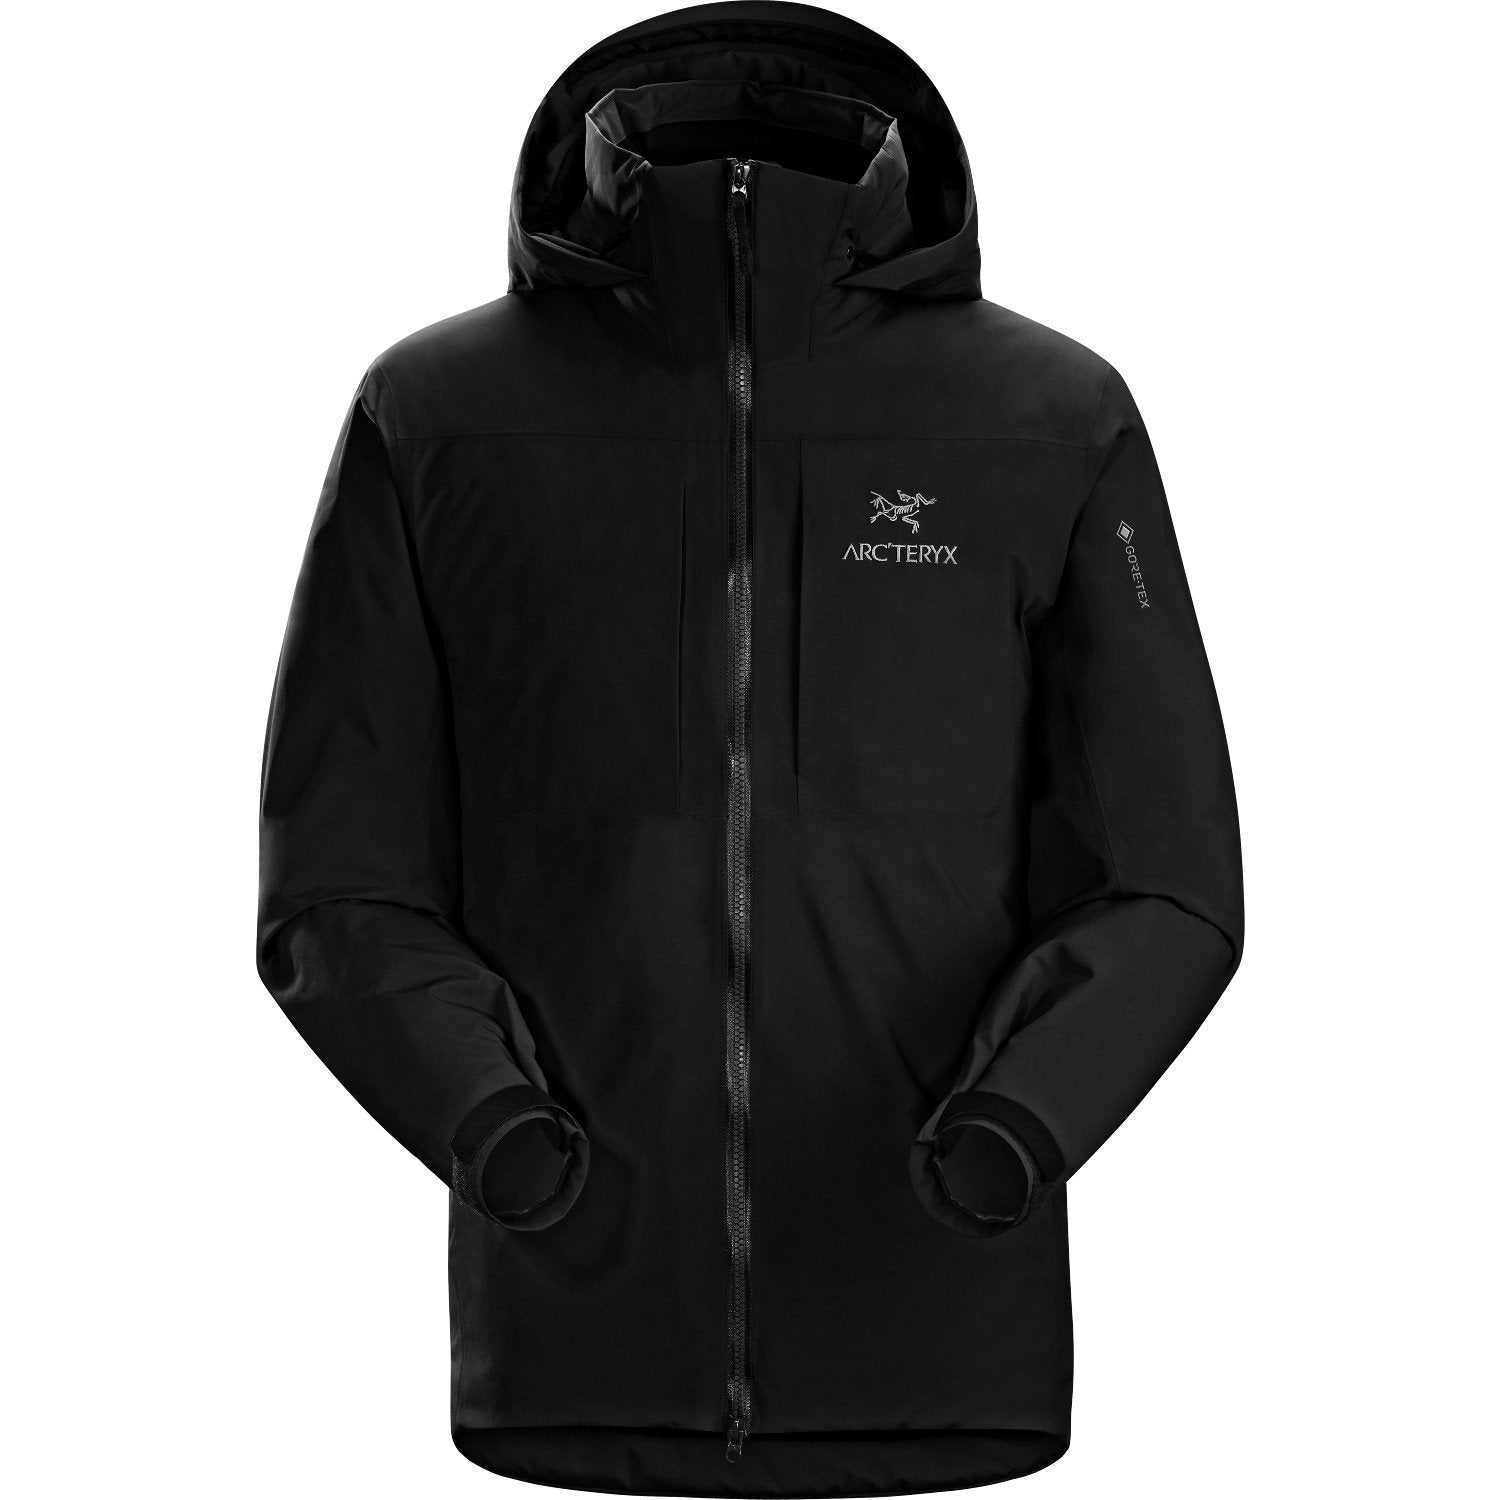 Arc'Teryx Fission SV Jacket, front view shown fully closed up, in black colour